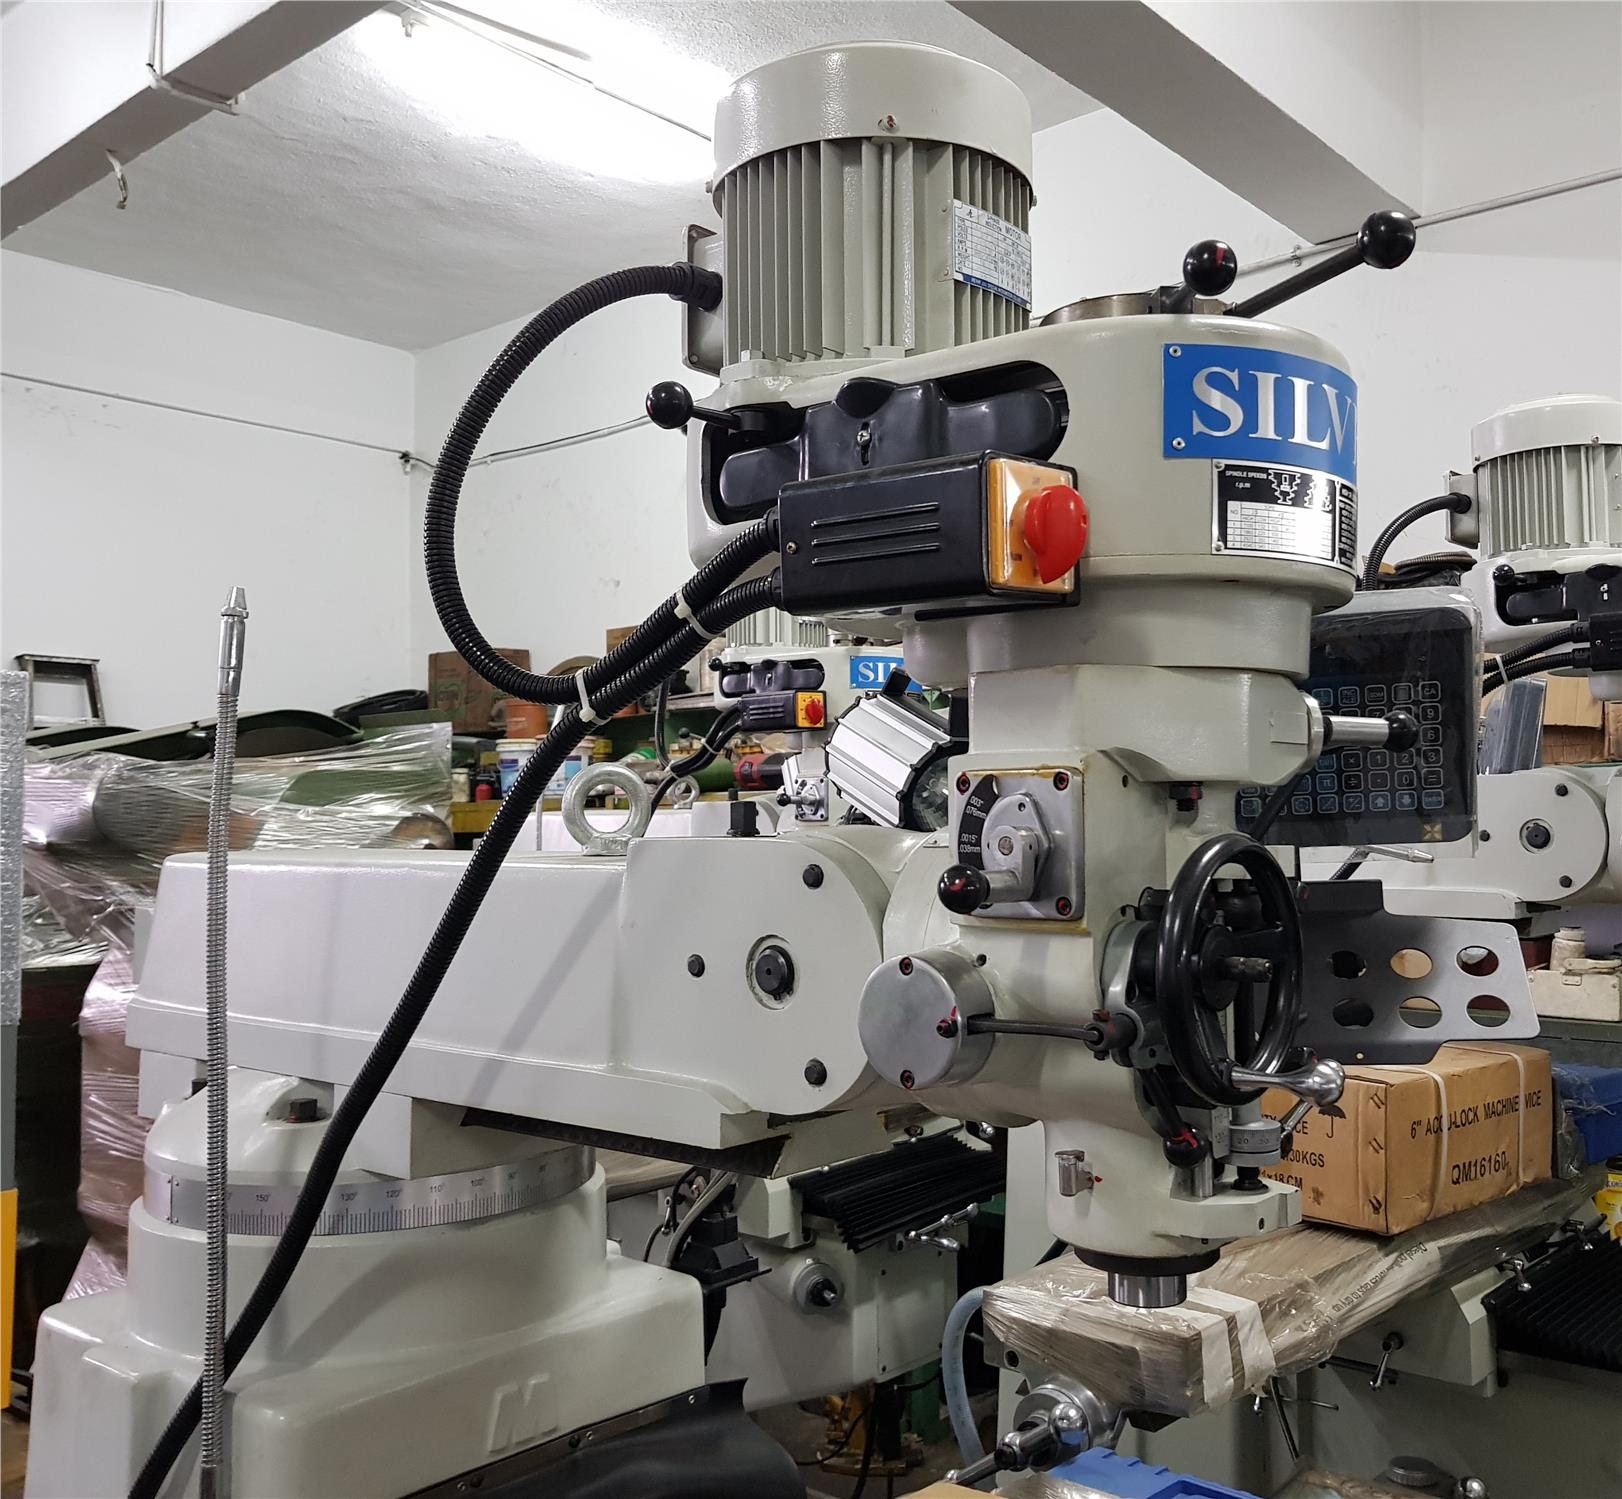 NEW SILVER VERTICAL TURRET MILLING MACHINE